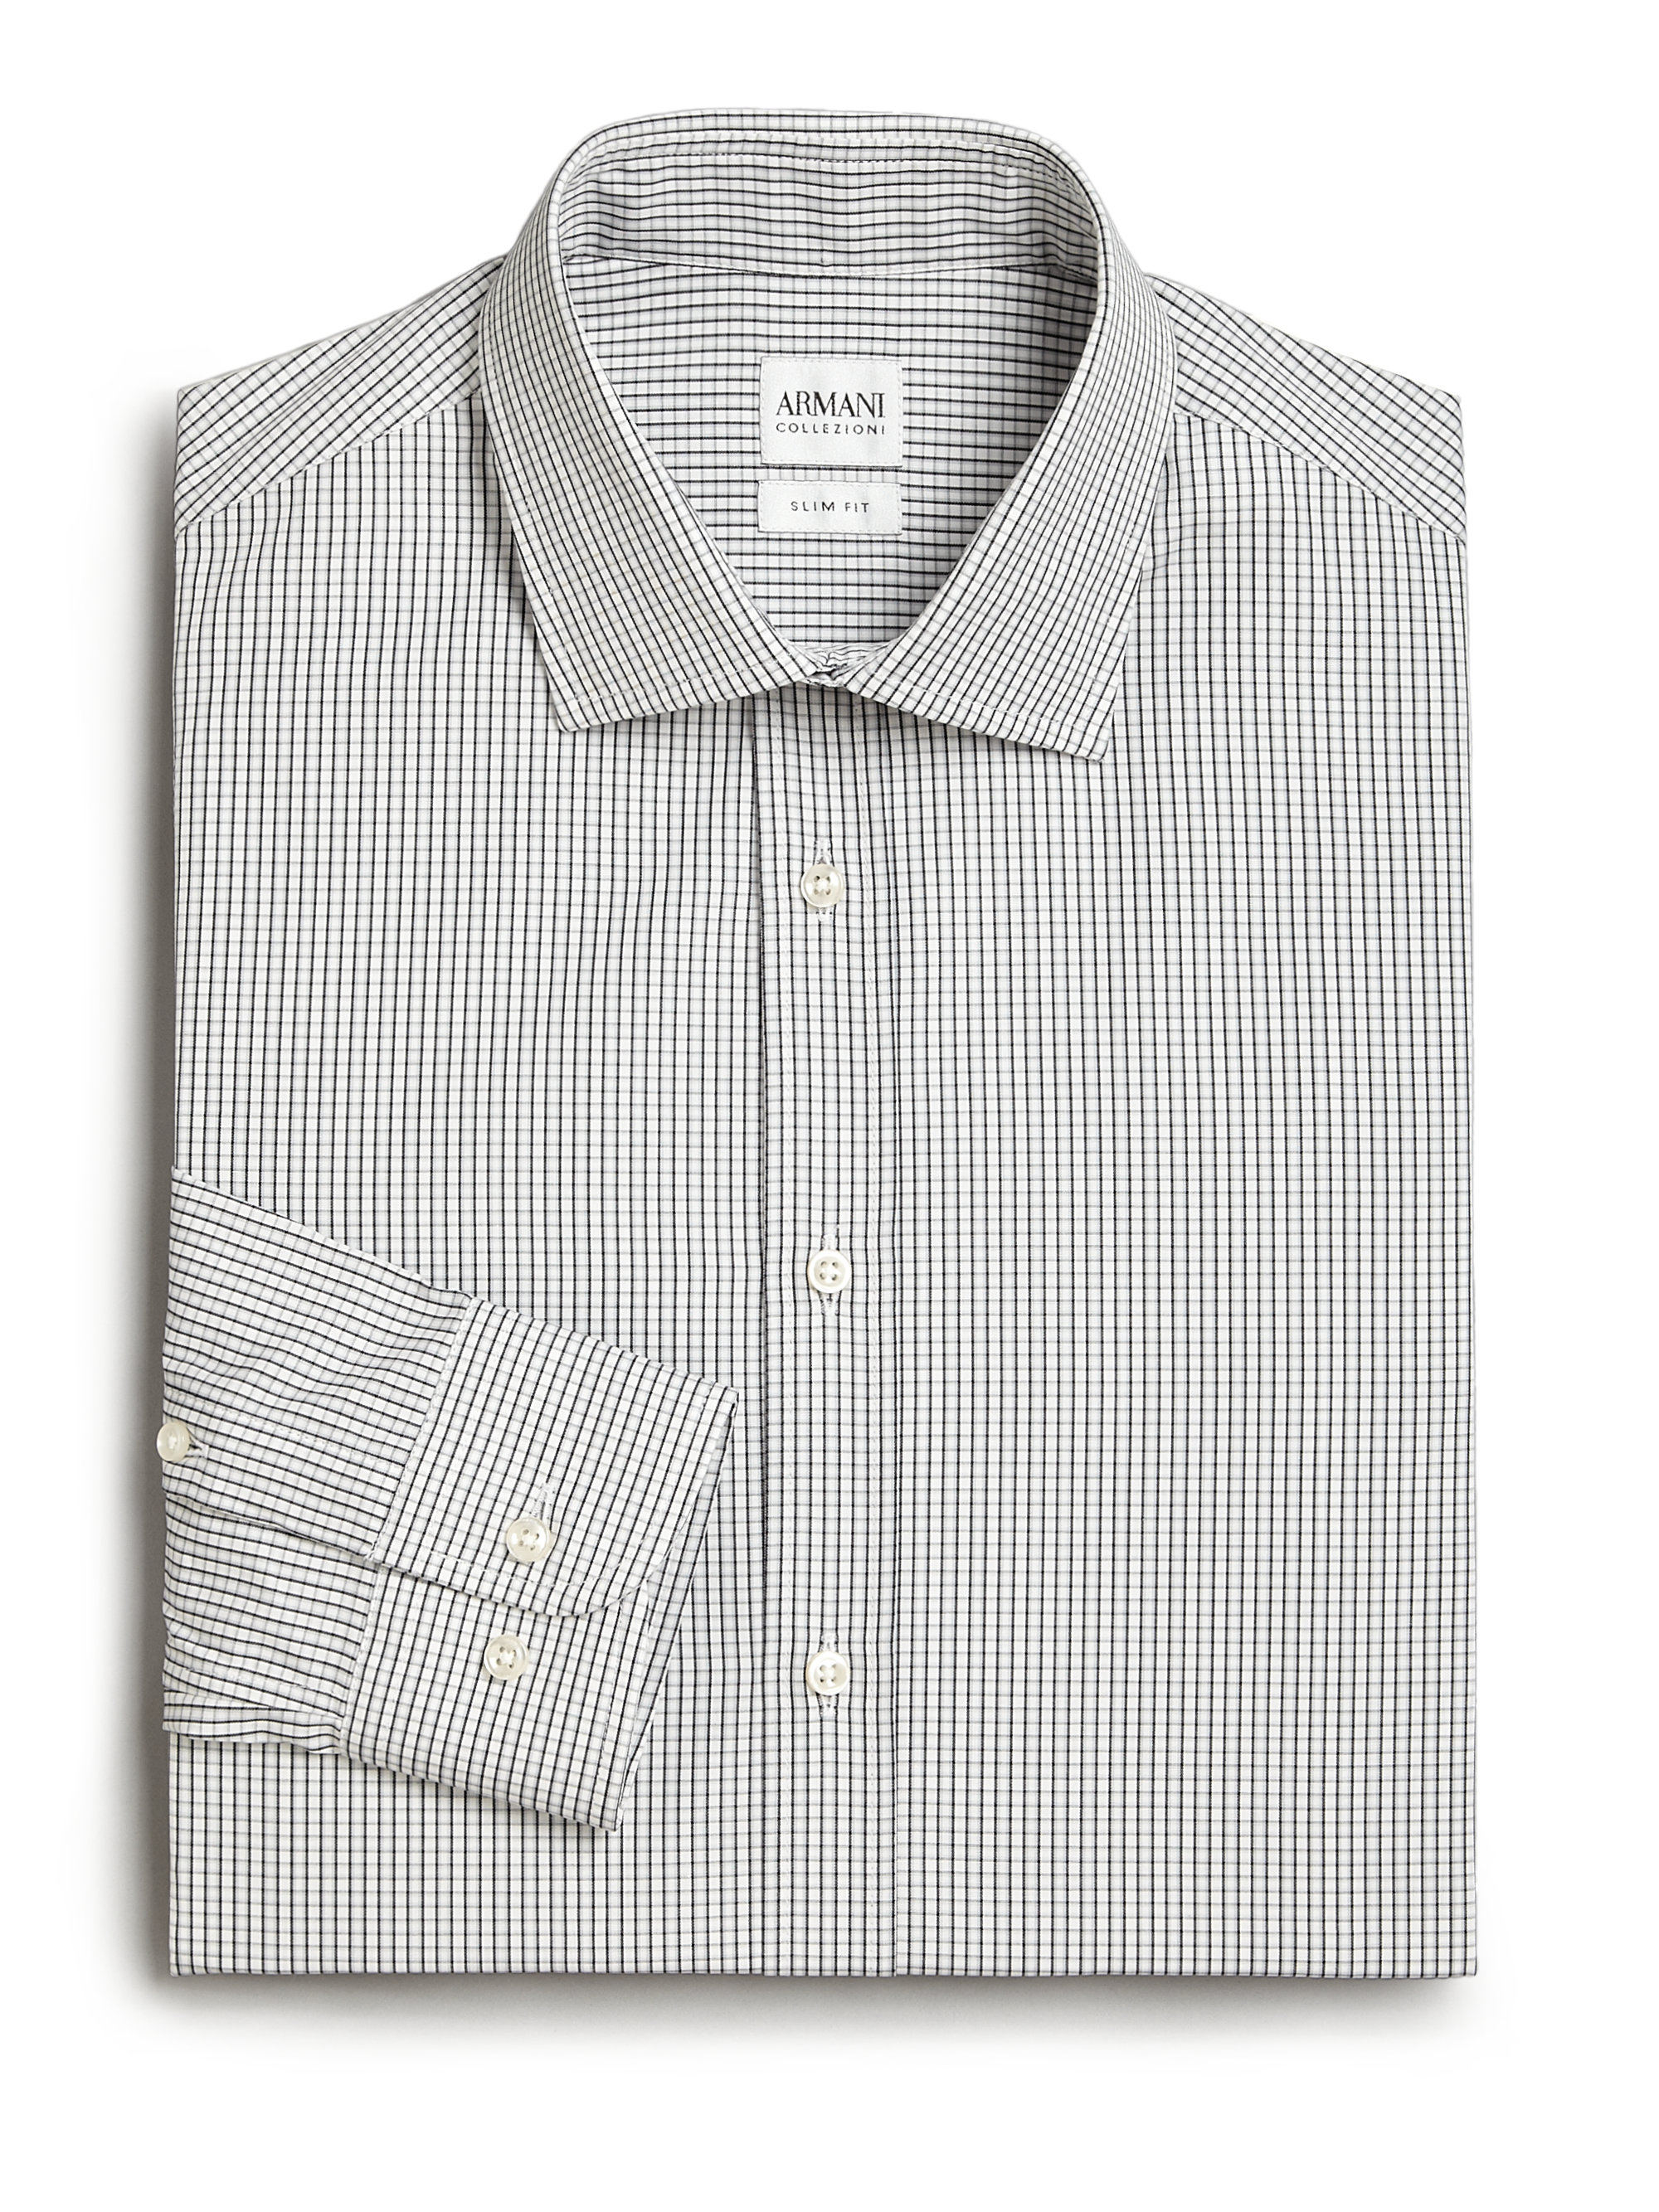 Armani extra slim fit checked dress shirt in black for men for Extra slim dress shirt